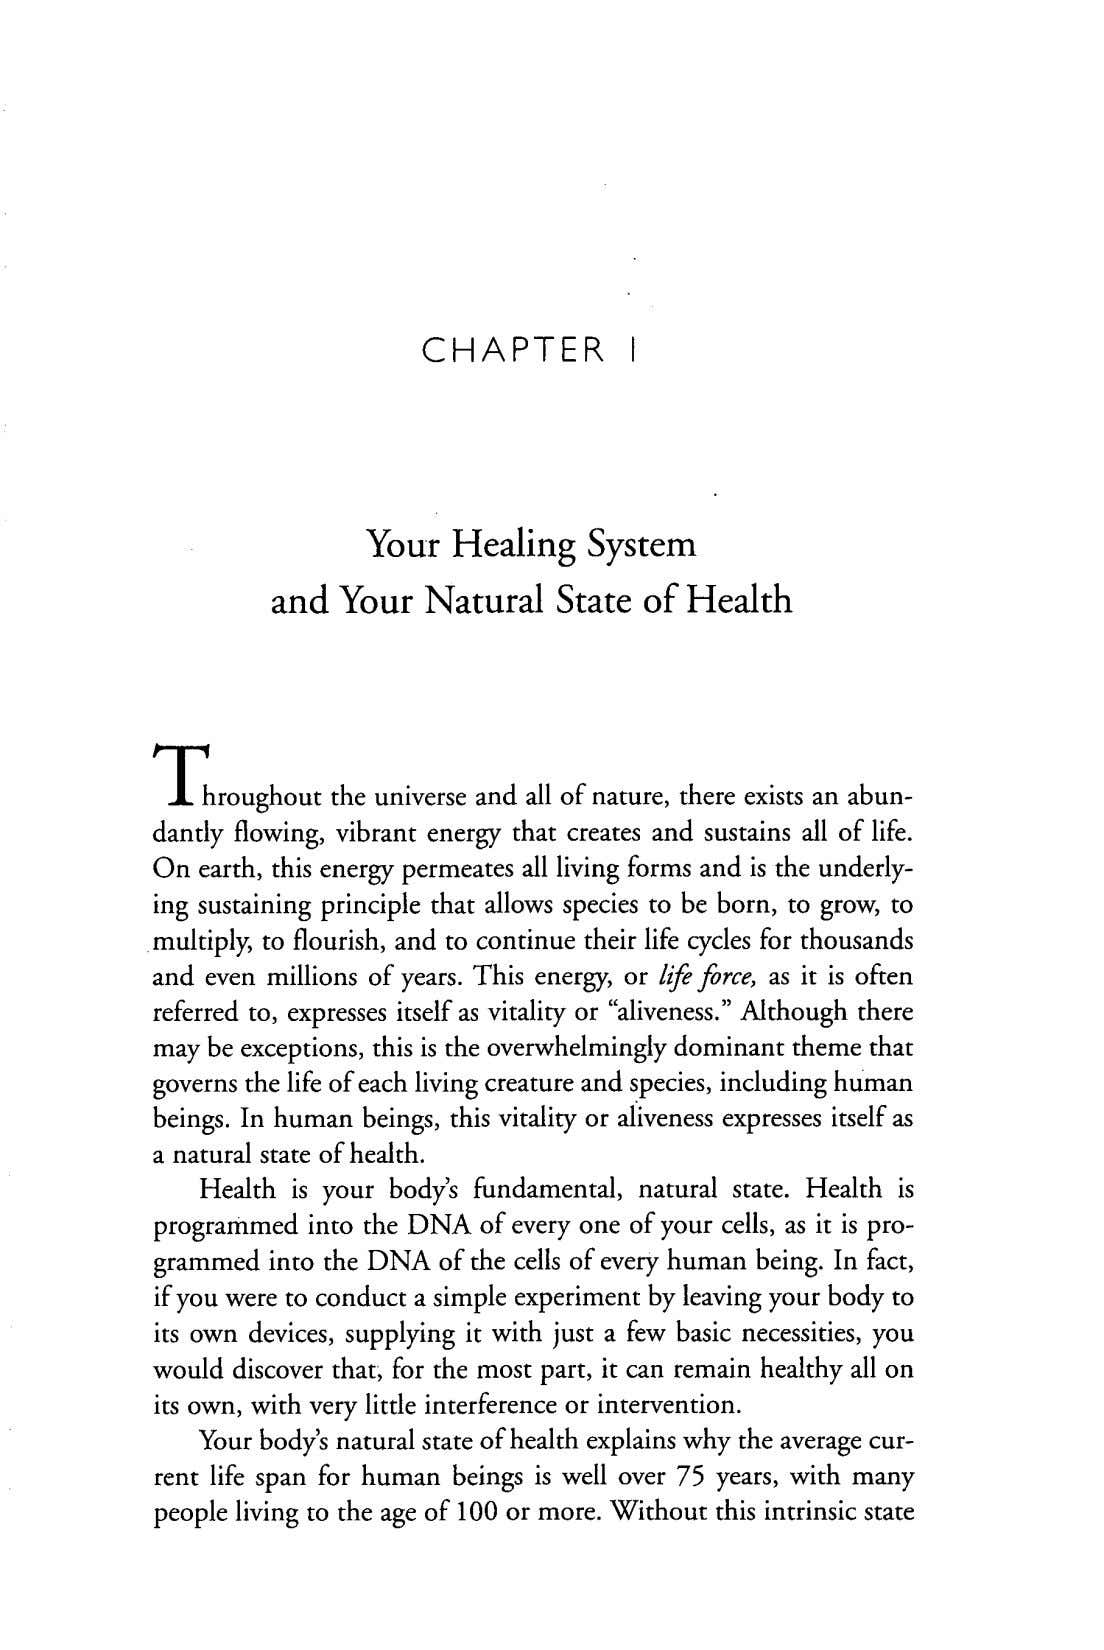 CHAPTER I Your Healing System and Your Natural State of Health hroughout the universe and